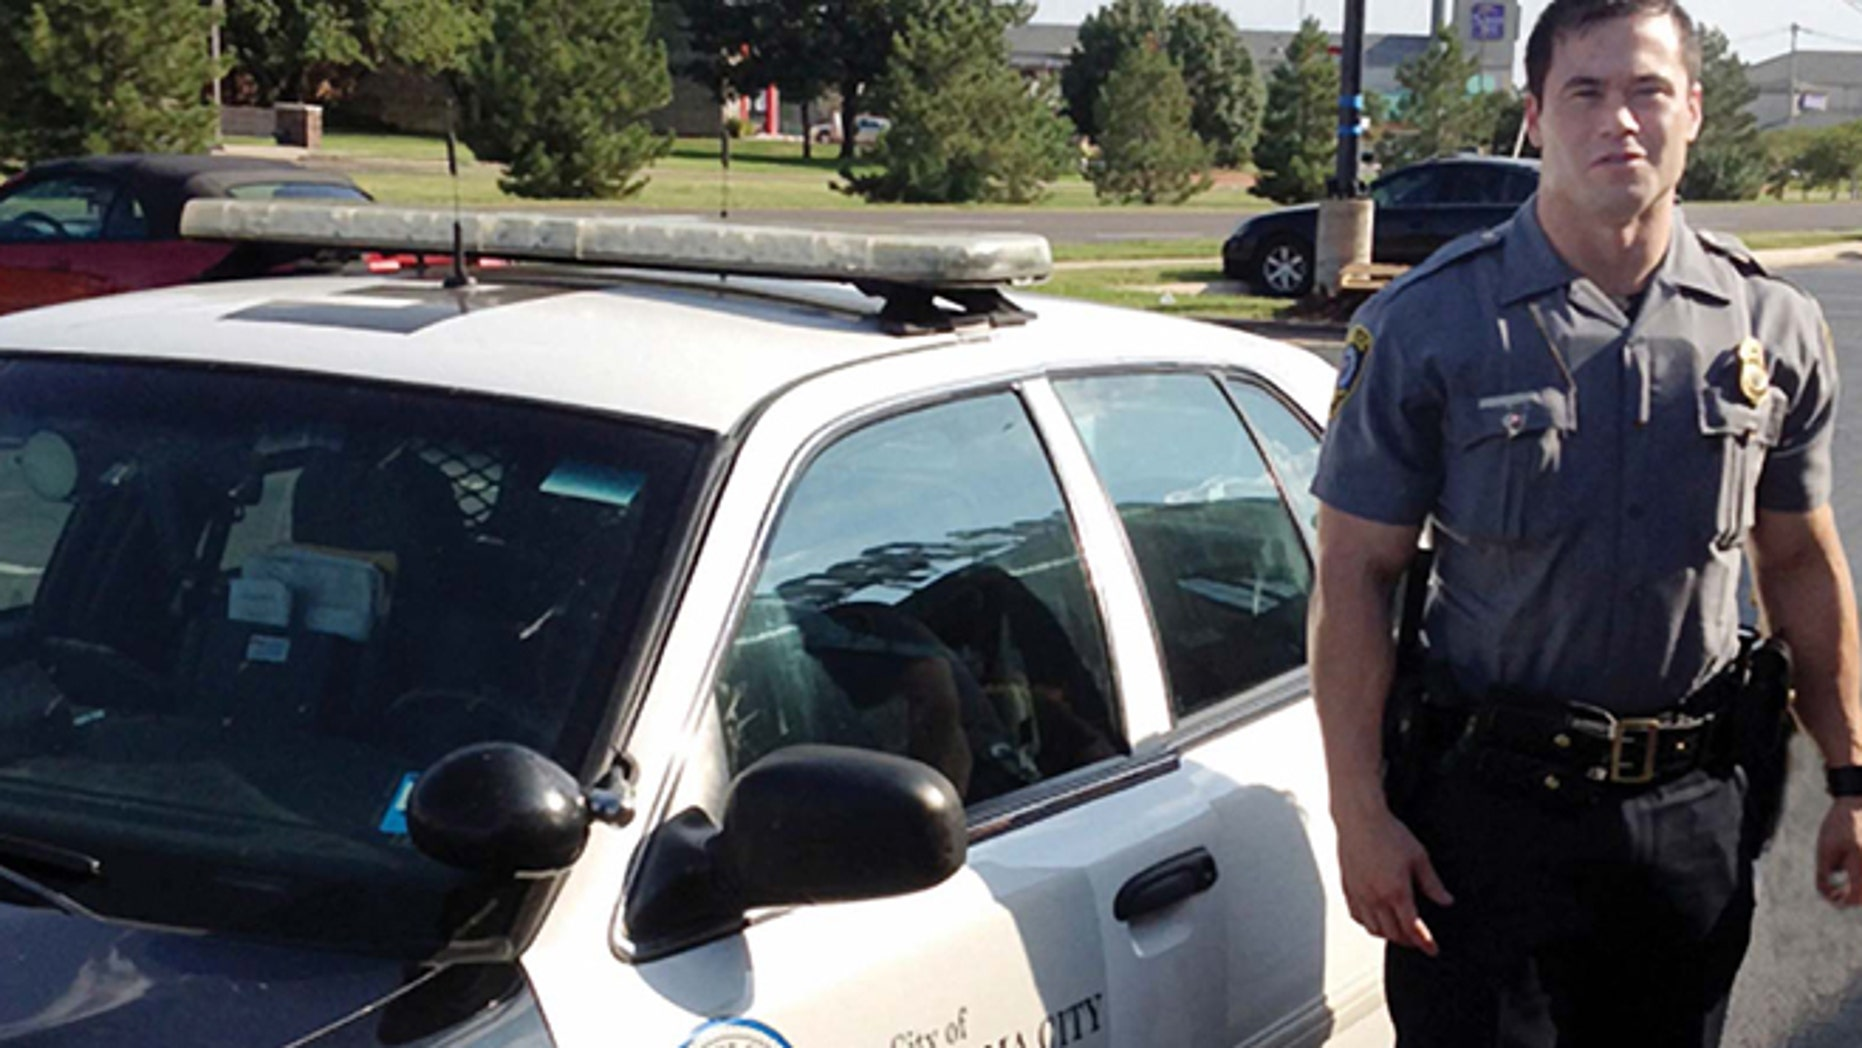 Sept. 2, 2012: In this file photo, provided by the Oklahoma Police Dept., Oklahoma City police officer Daniel Holtzclaw stands next to his vehicle.